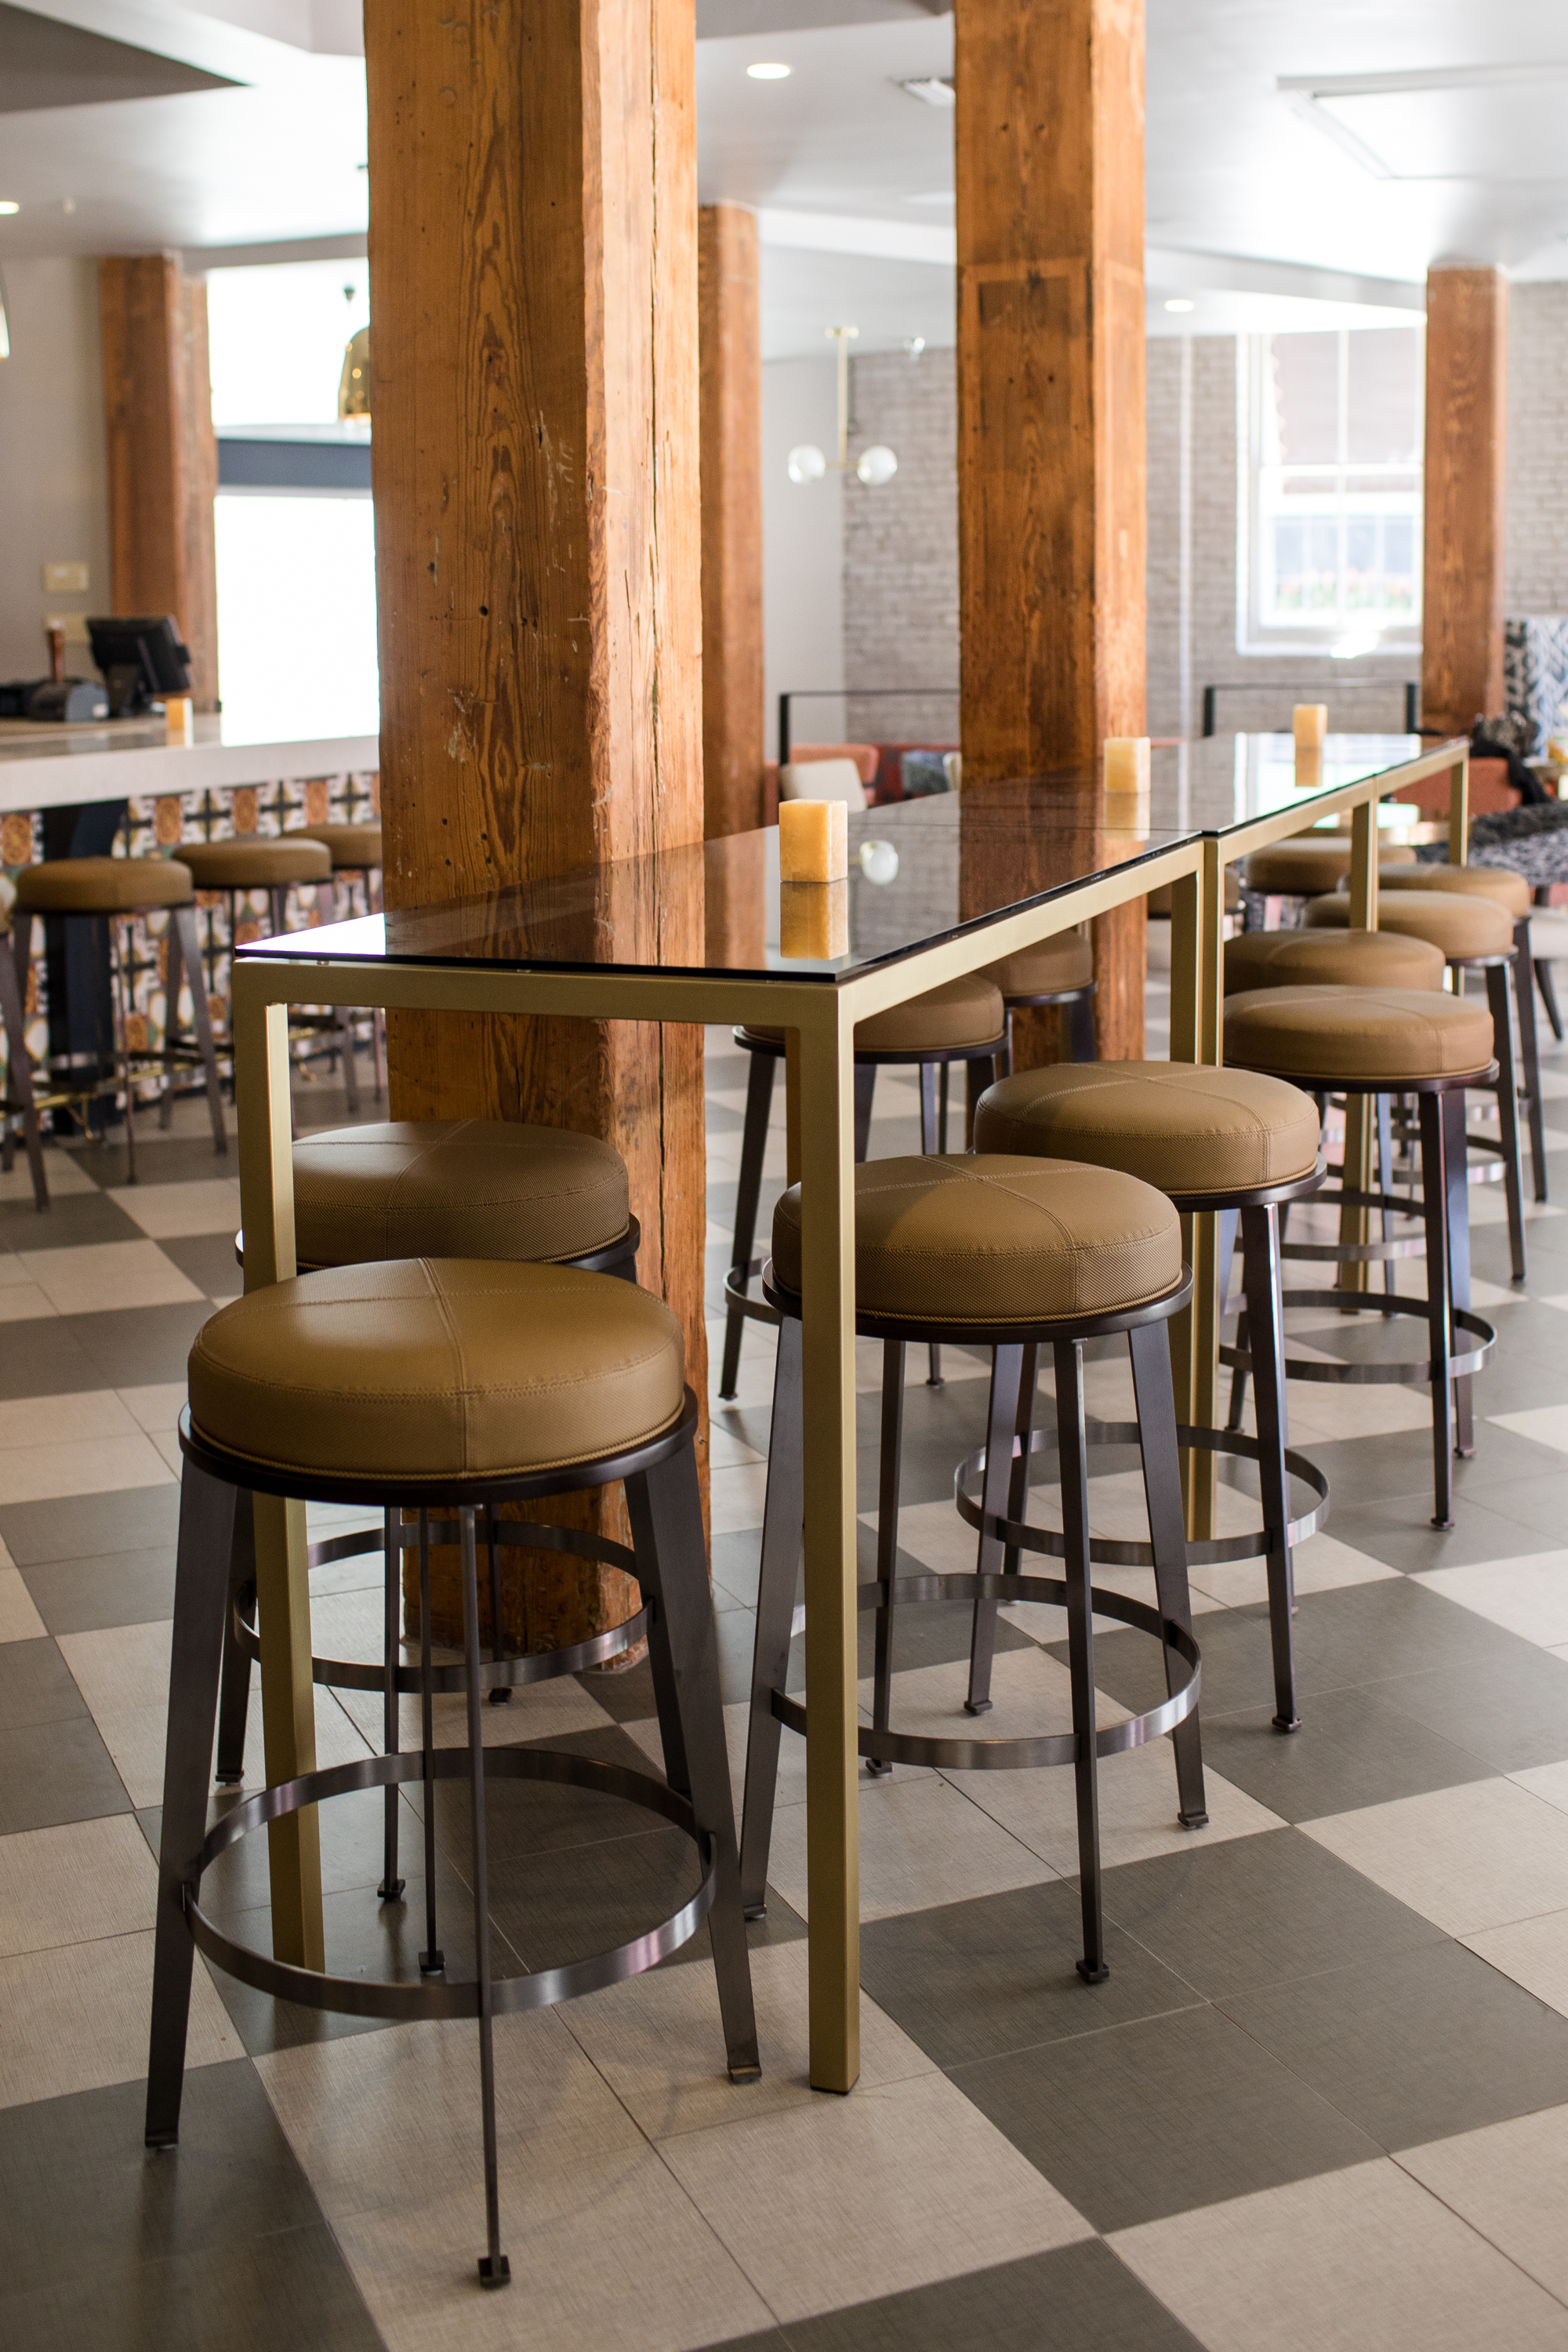 Family Style Tables Create A Communal Social House Vibe At NOSH BRASTED